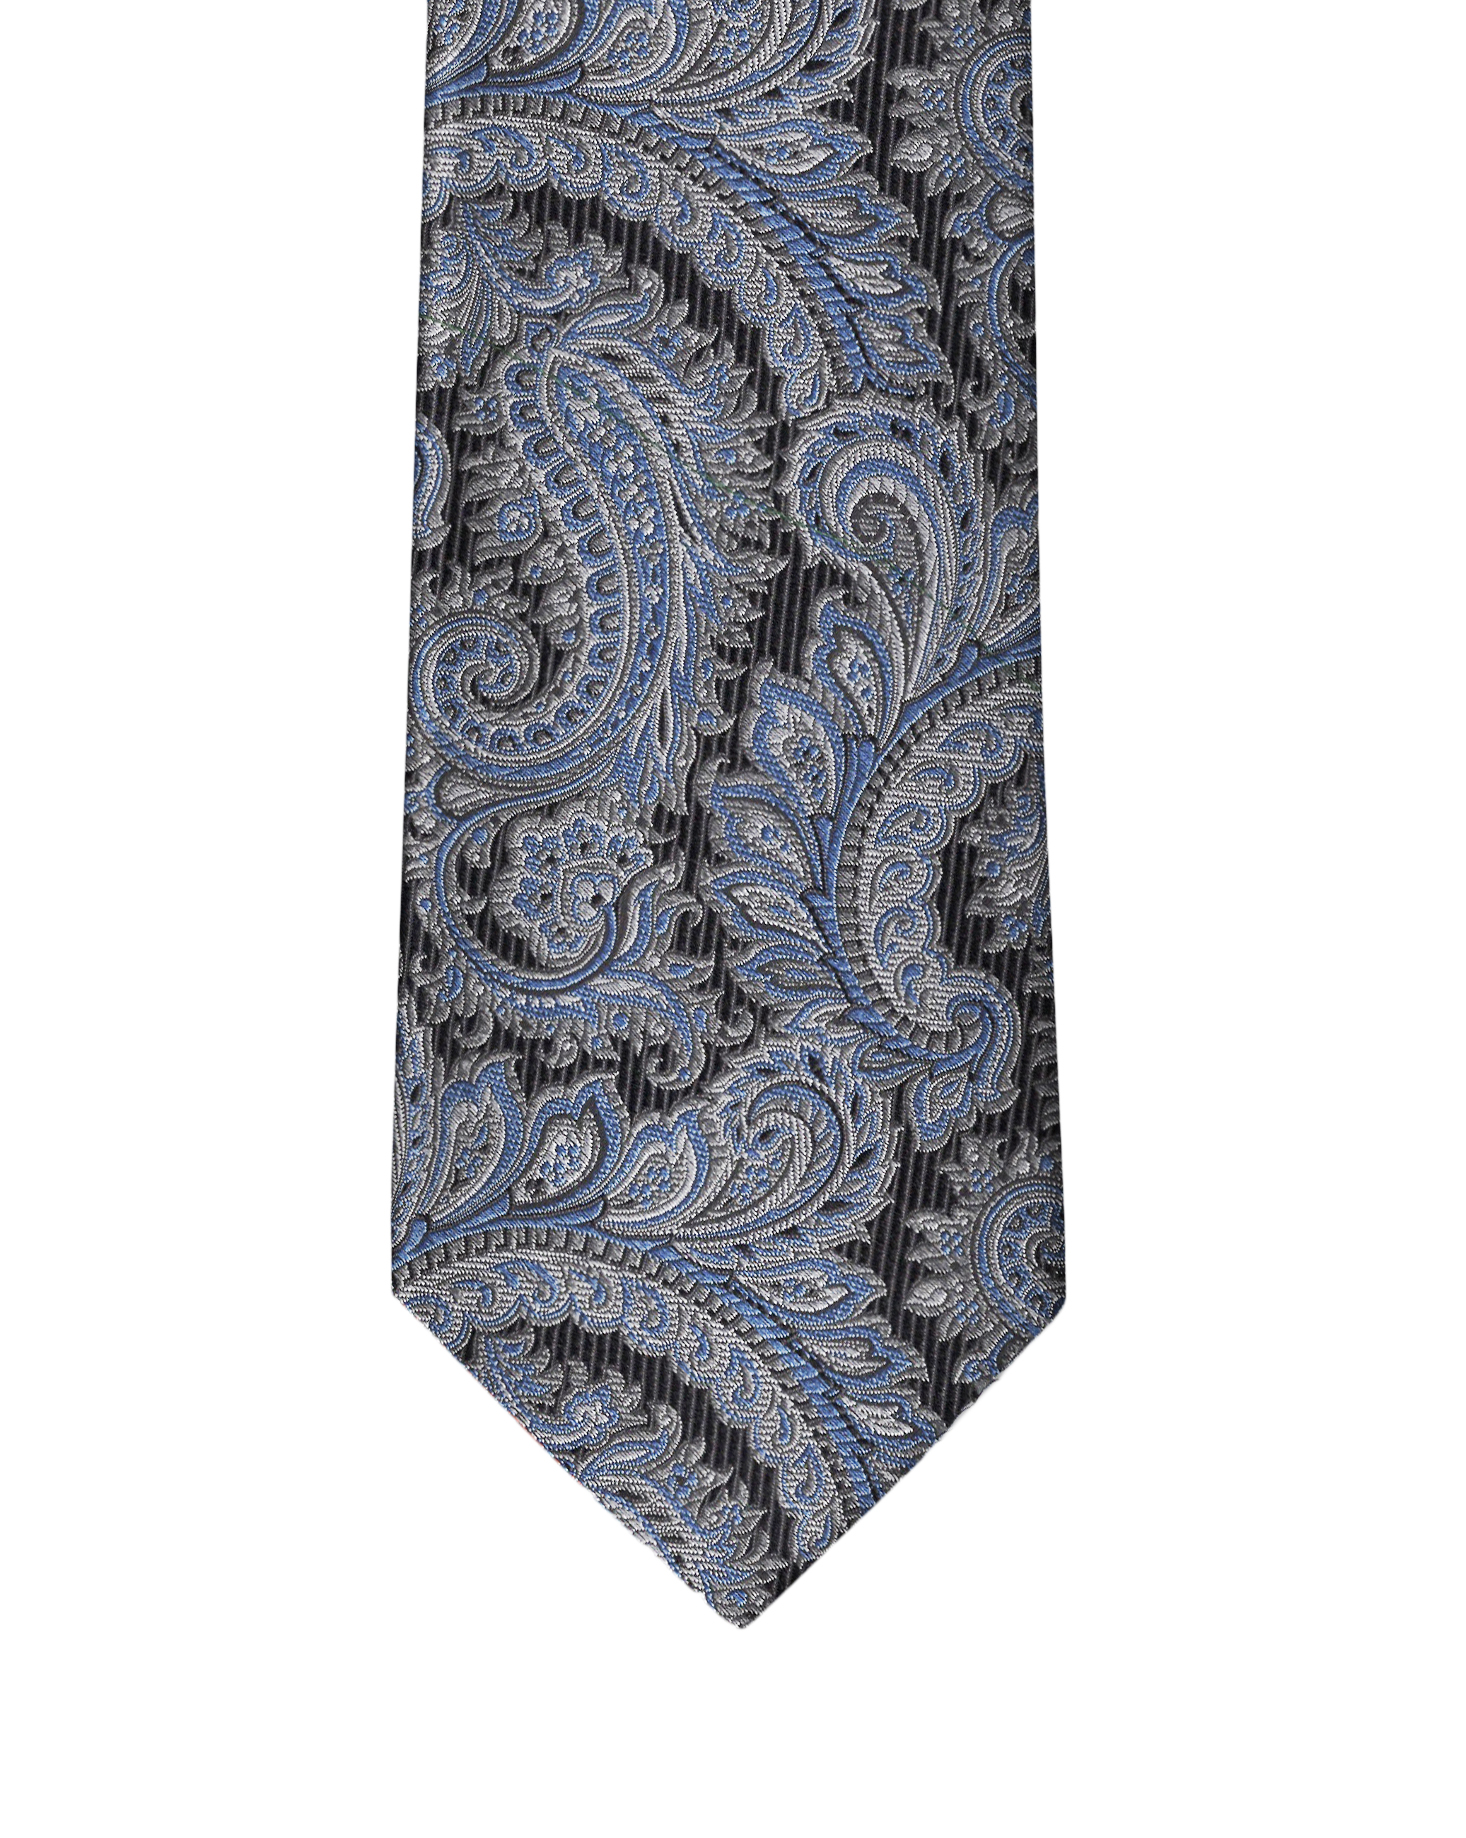 Black & Grey Paisley Necktie